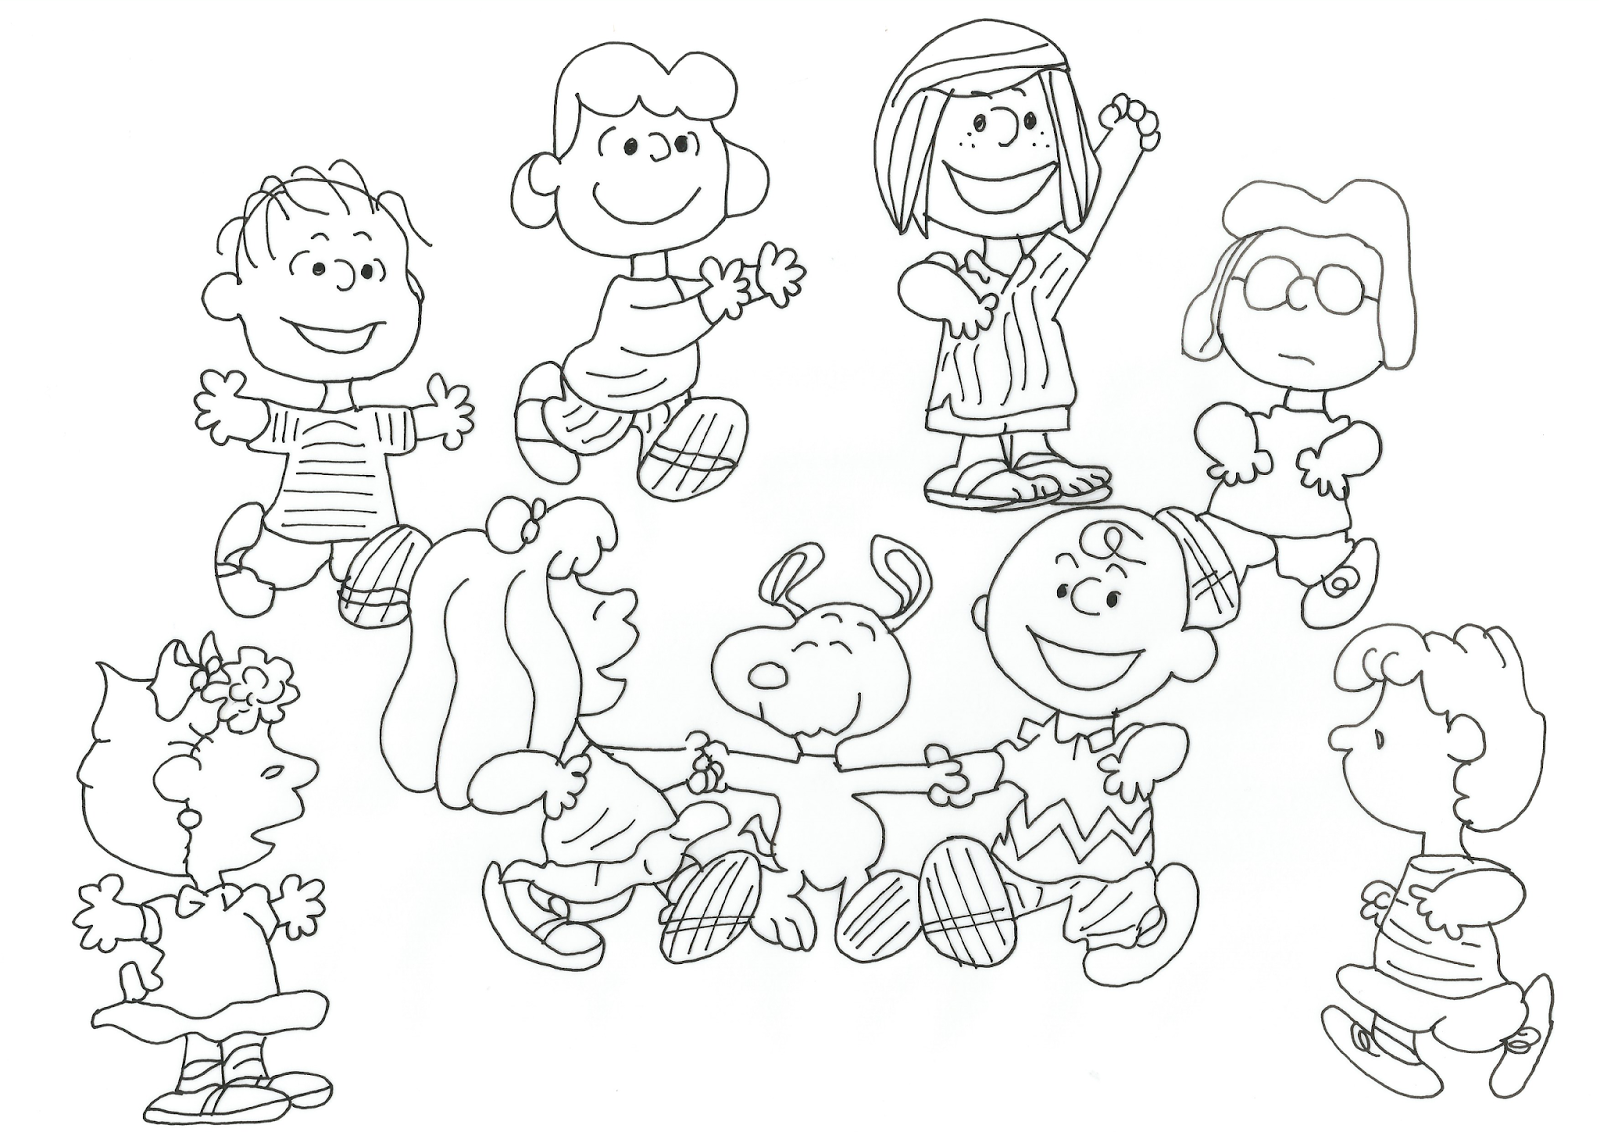 Coloring pictures charlie brown characters - a-k-b.info